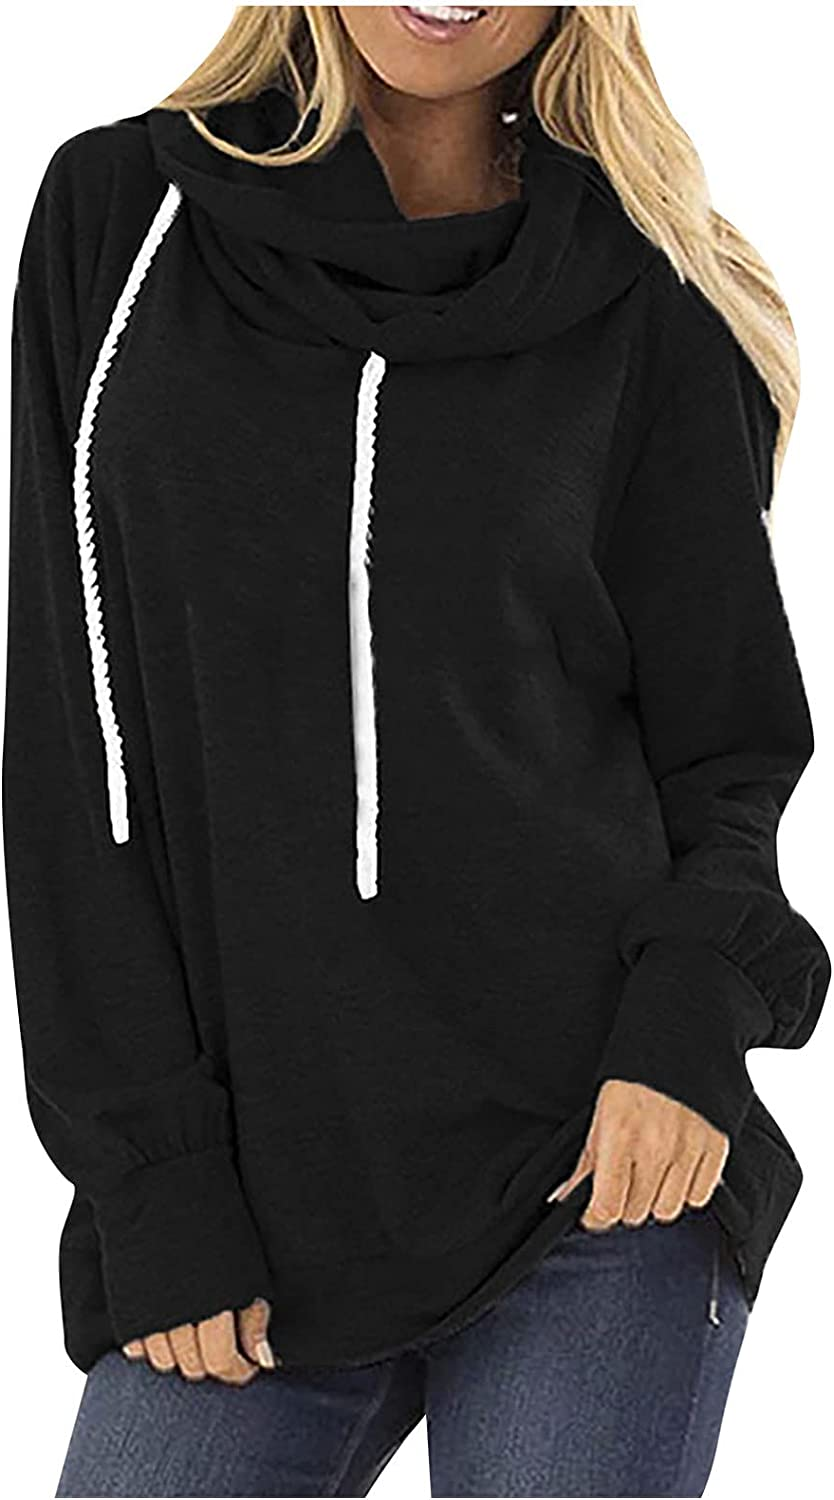 Women's Solid Color Drawstring Turtleneck Hooded Hedging Long Sleeve Loose Fashion Pullover Tops Casual Sweatshirts